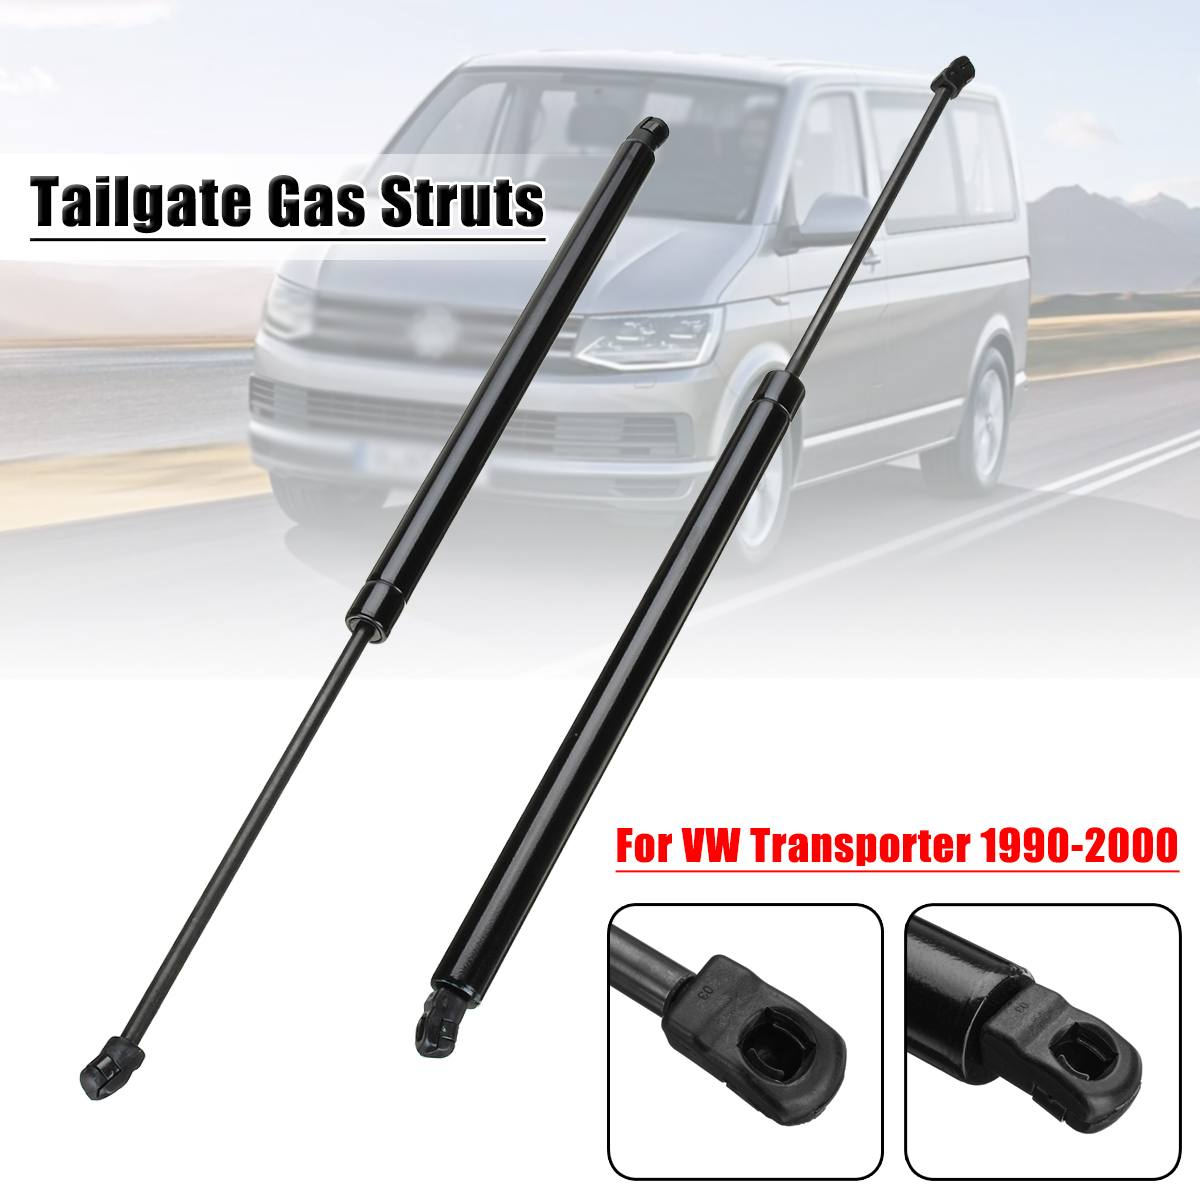 Pair Car Rear Tailgate Lift Trunk Support Rod Gas Struts 970N for Volkswagen for VW Transporter T4 Transporter MK IV 1990-2003Pair Car Rear Tailgate Lift Trunk Support Rod Gas Struts 970N for Volkswagen for VW Transporter T4 Transporter MK IV 1990-2003